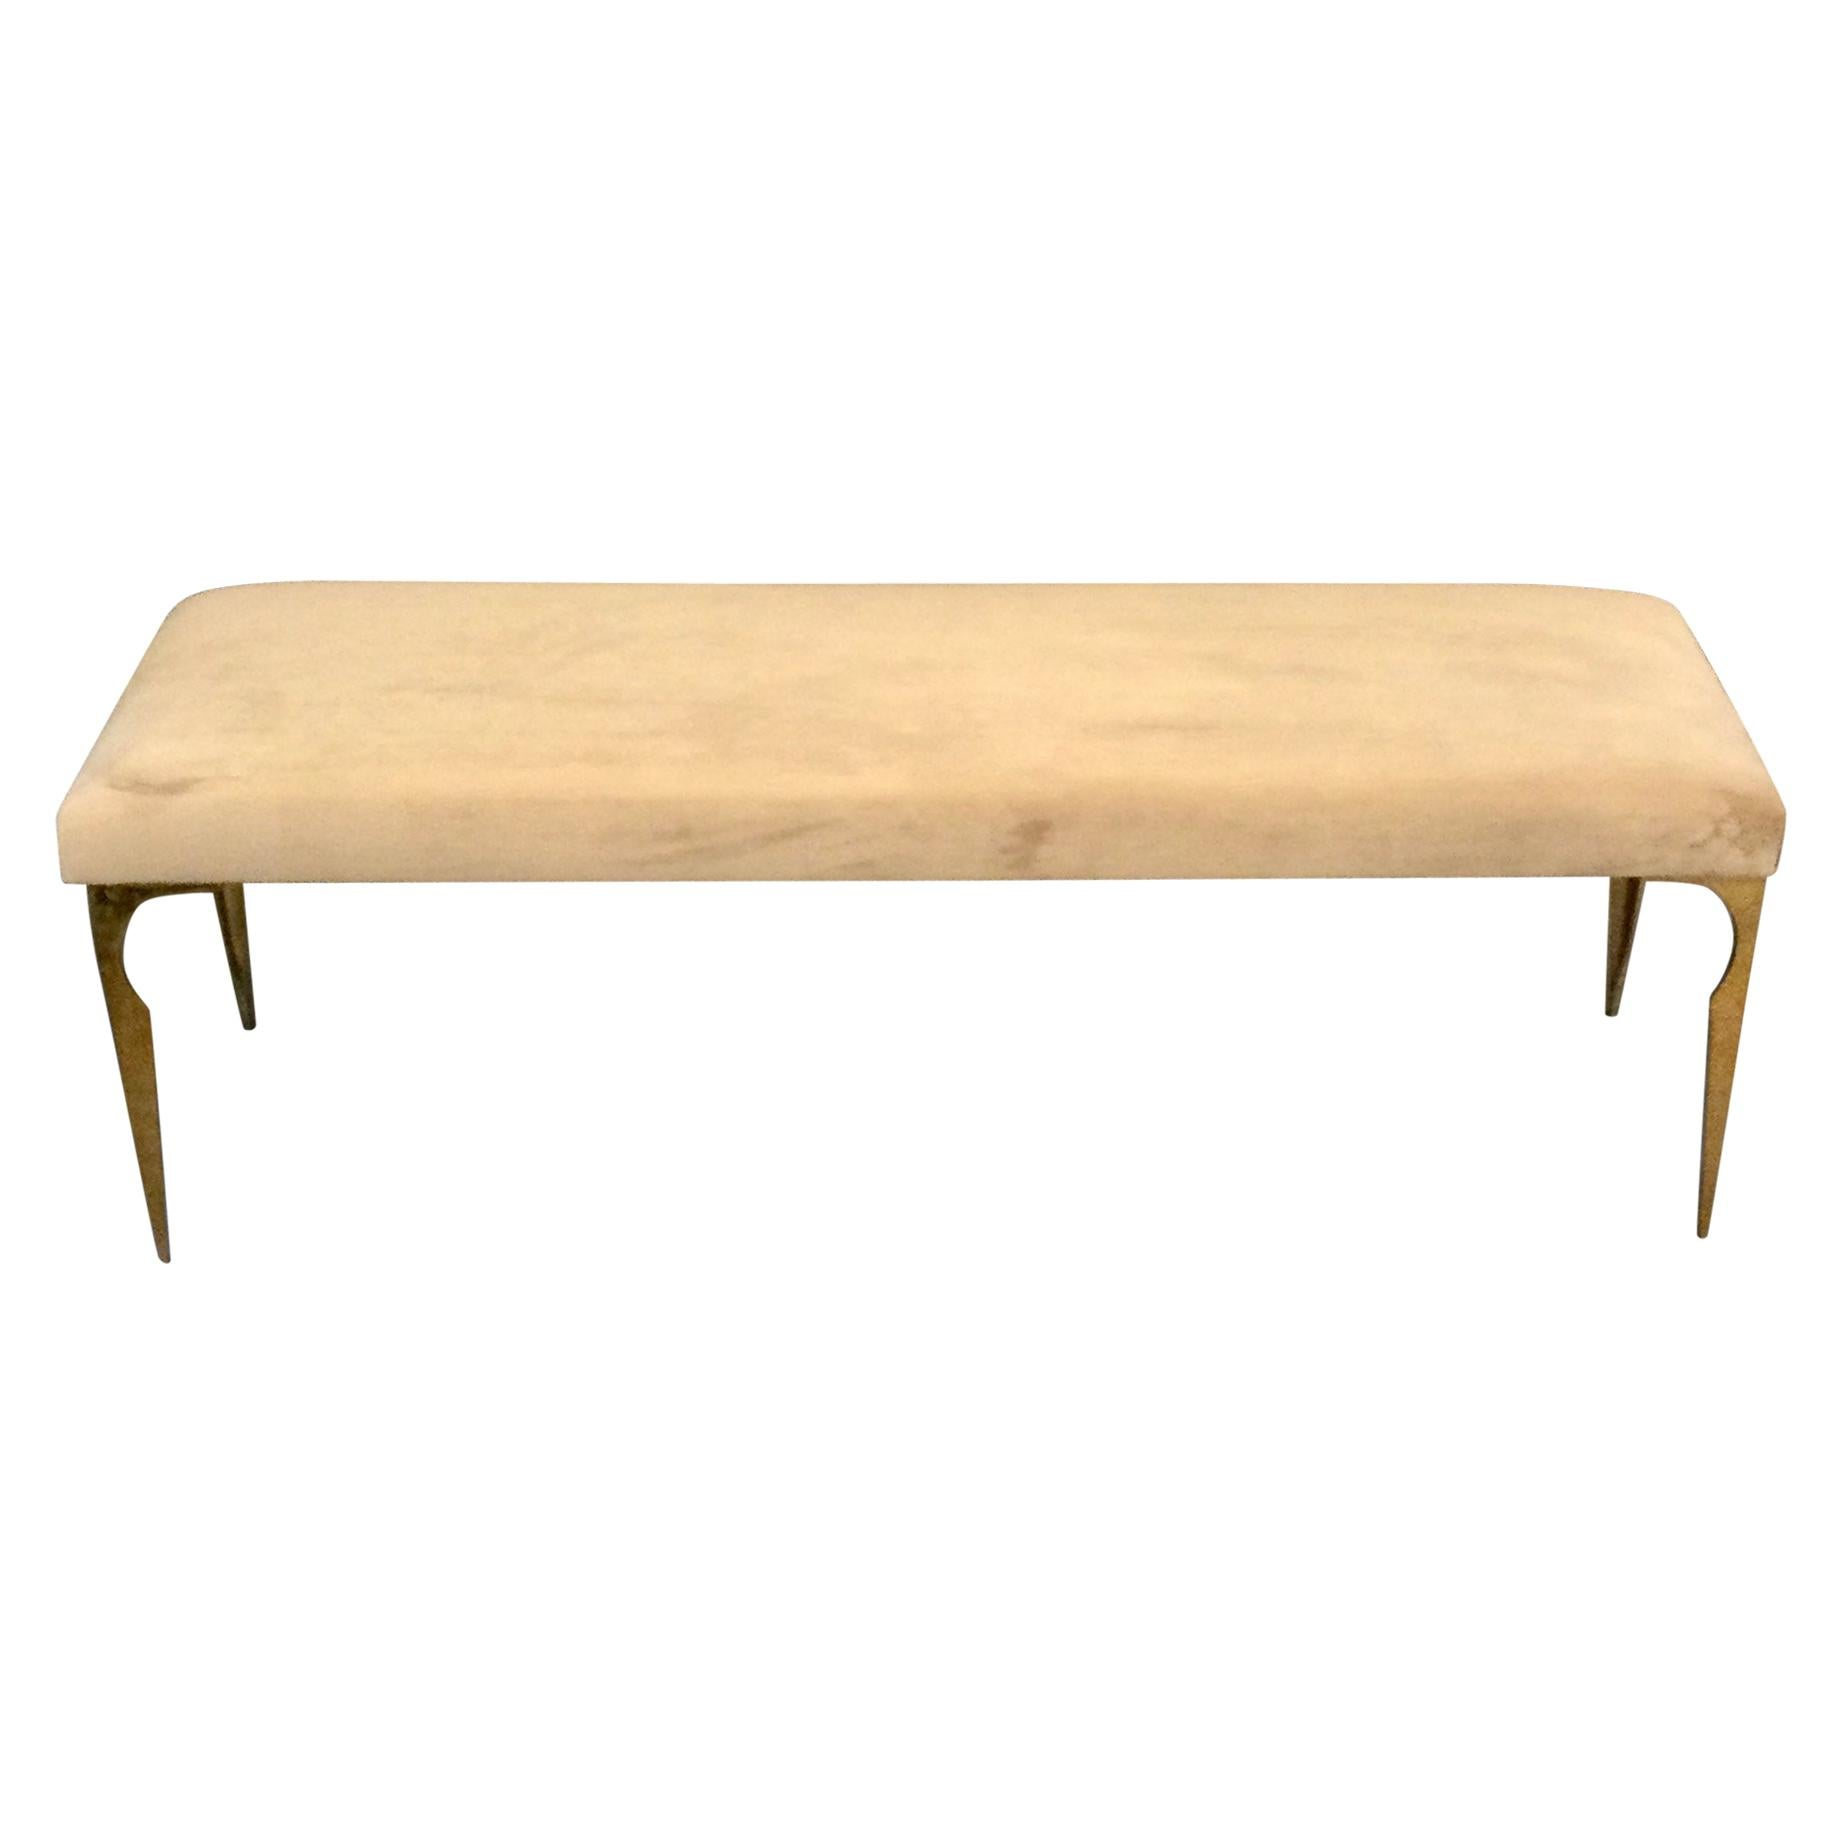 French Upholstered Bench on Bronze Legs Style of Maria Pergay, 1970